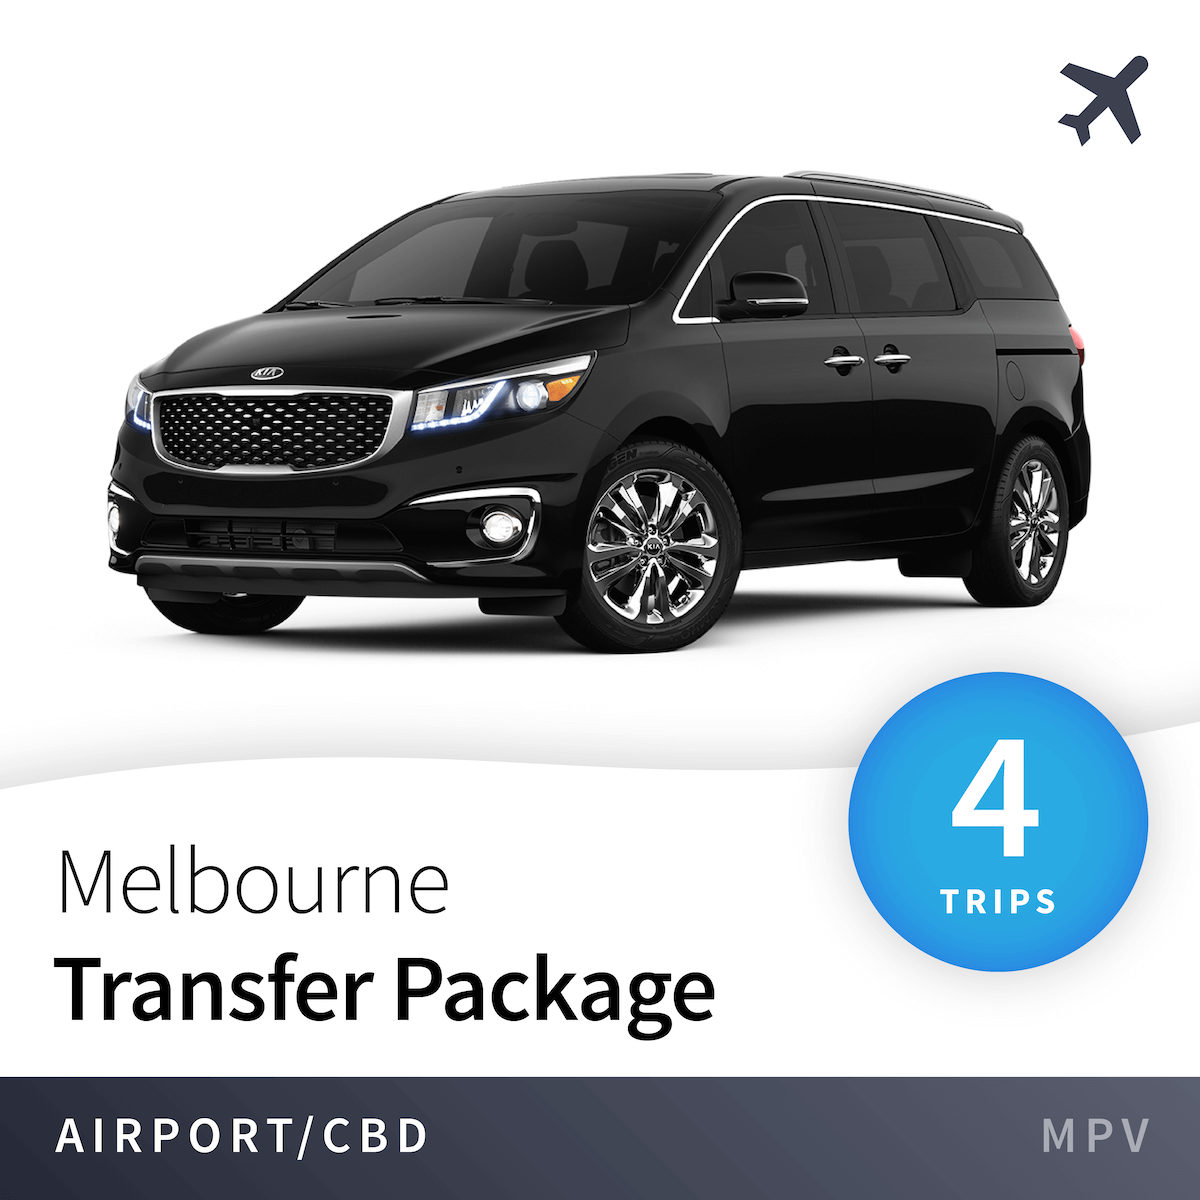 Melbourne Airport Transfer Package - MPV (4 Trips) 1